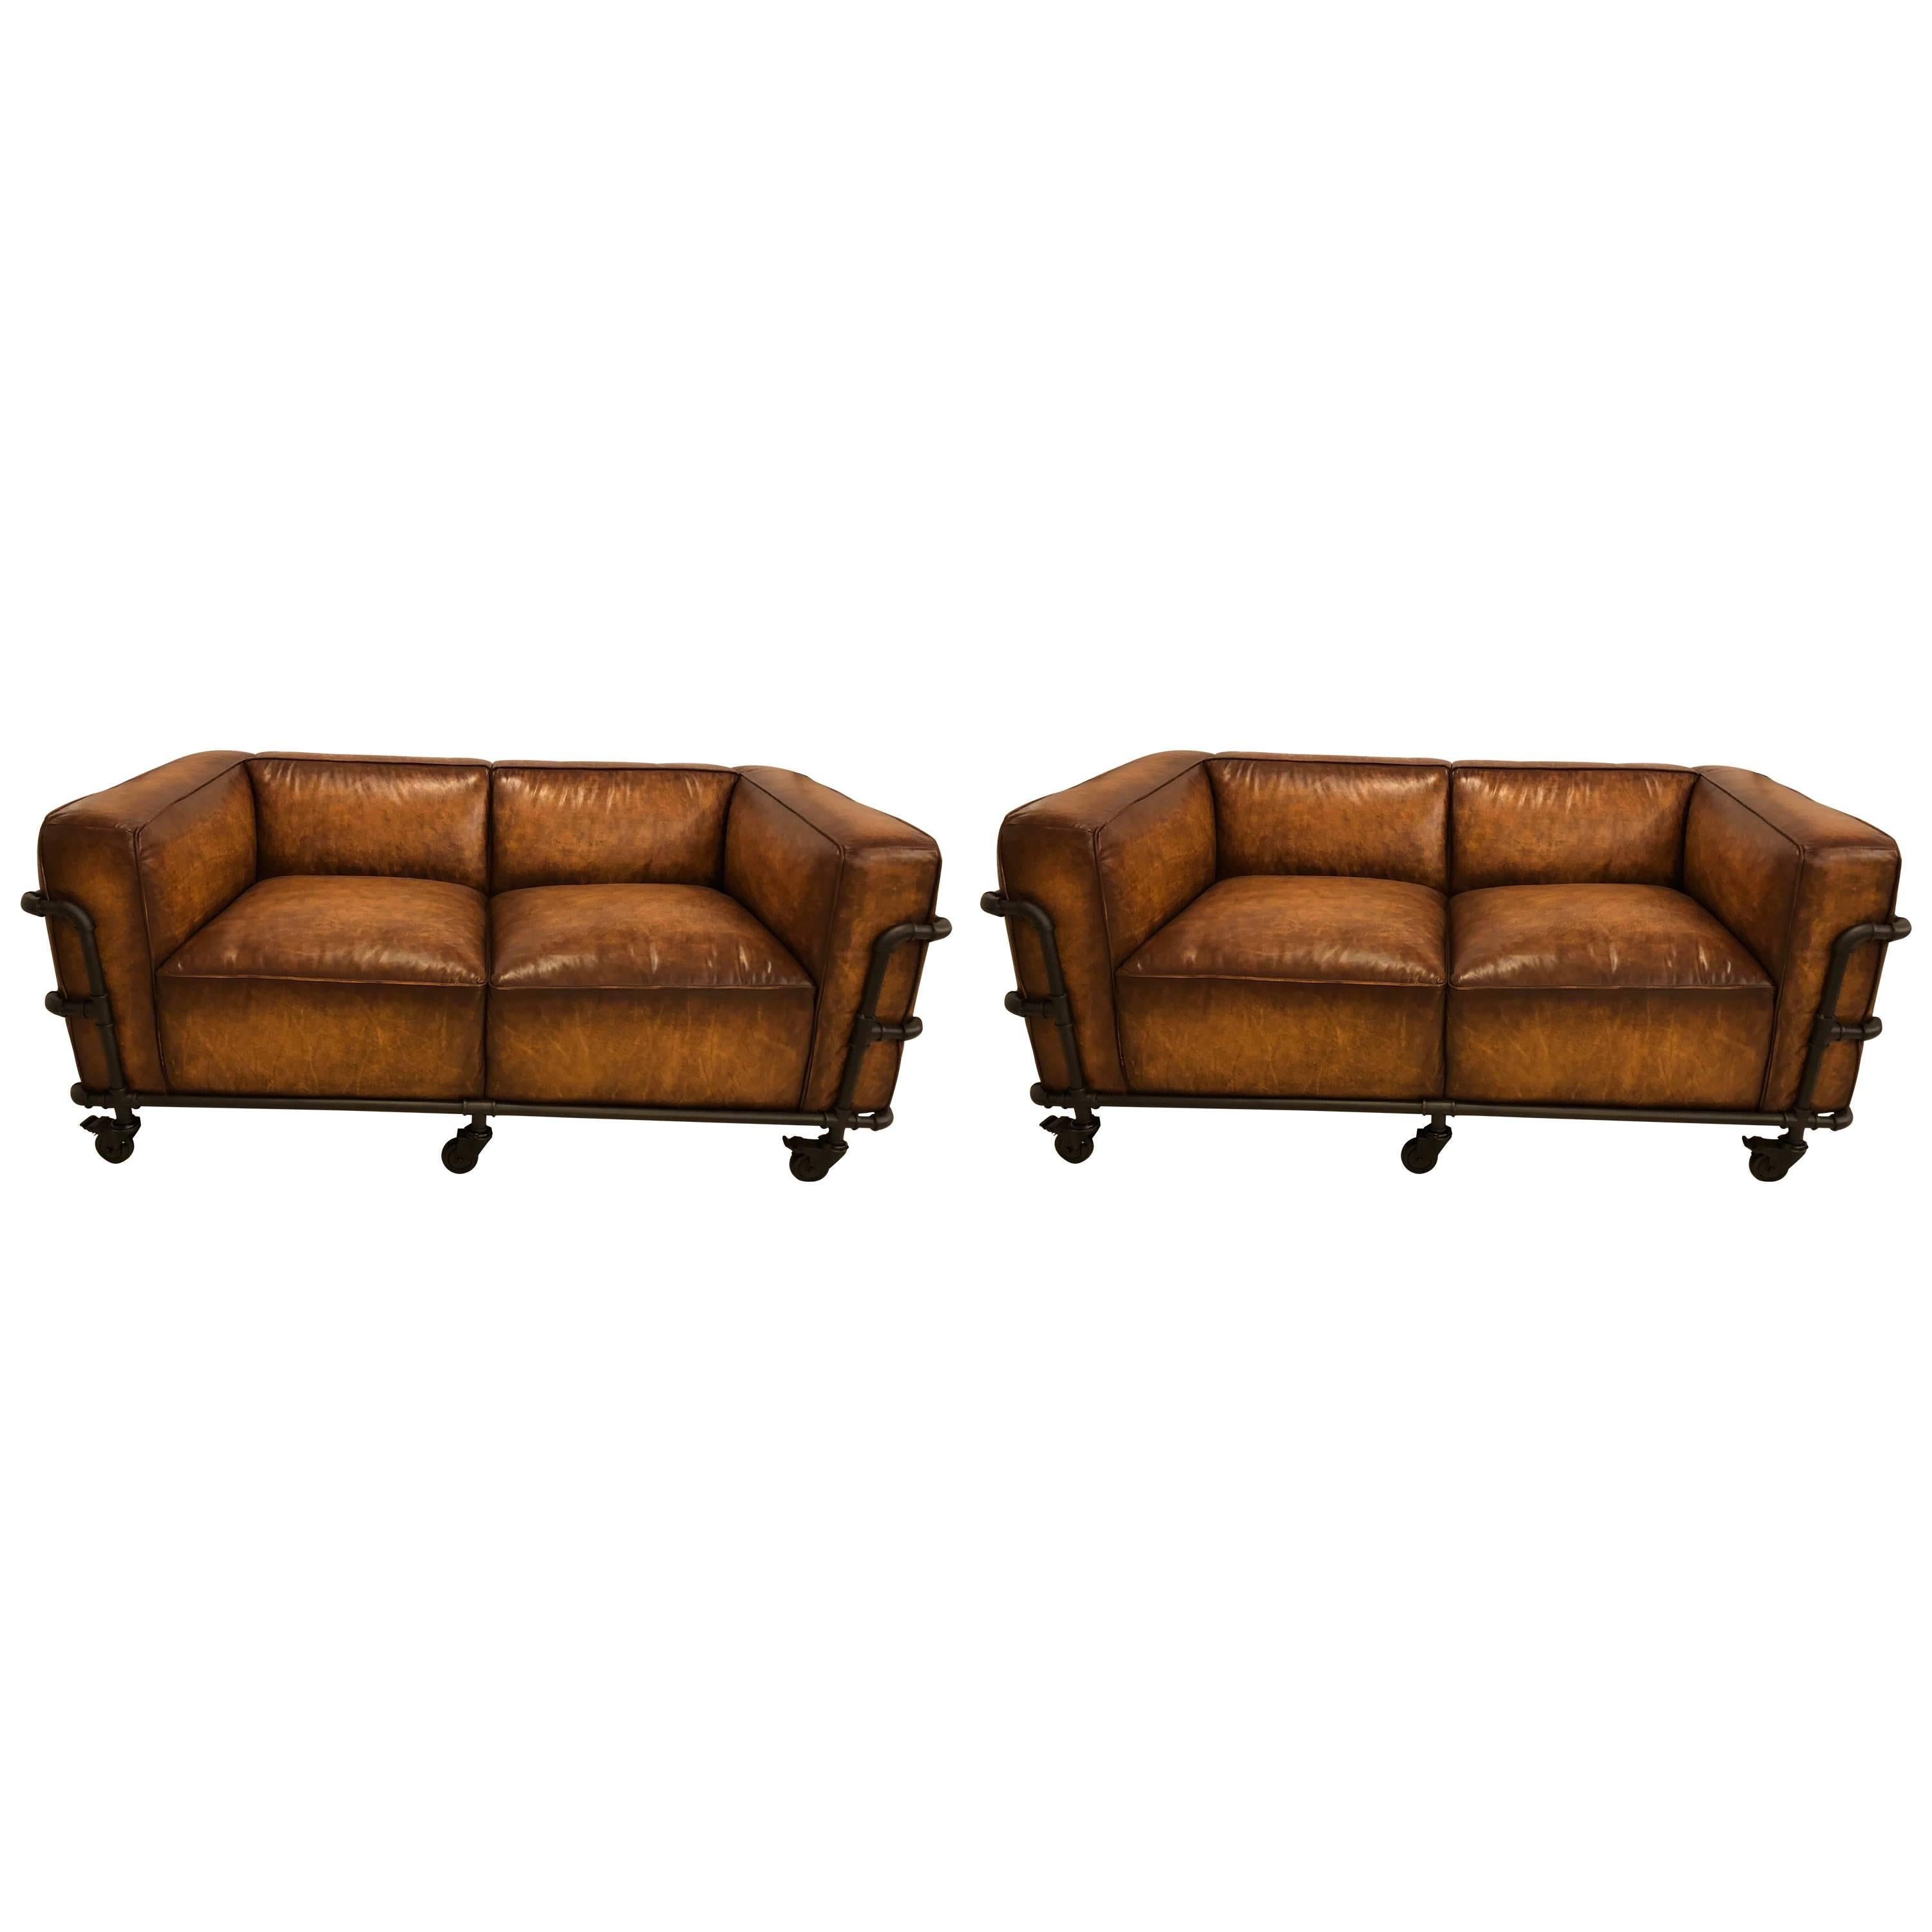 Superb Pair Of Industrial Style Sofas On Metal Frame Piping With Casters For Sale